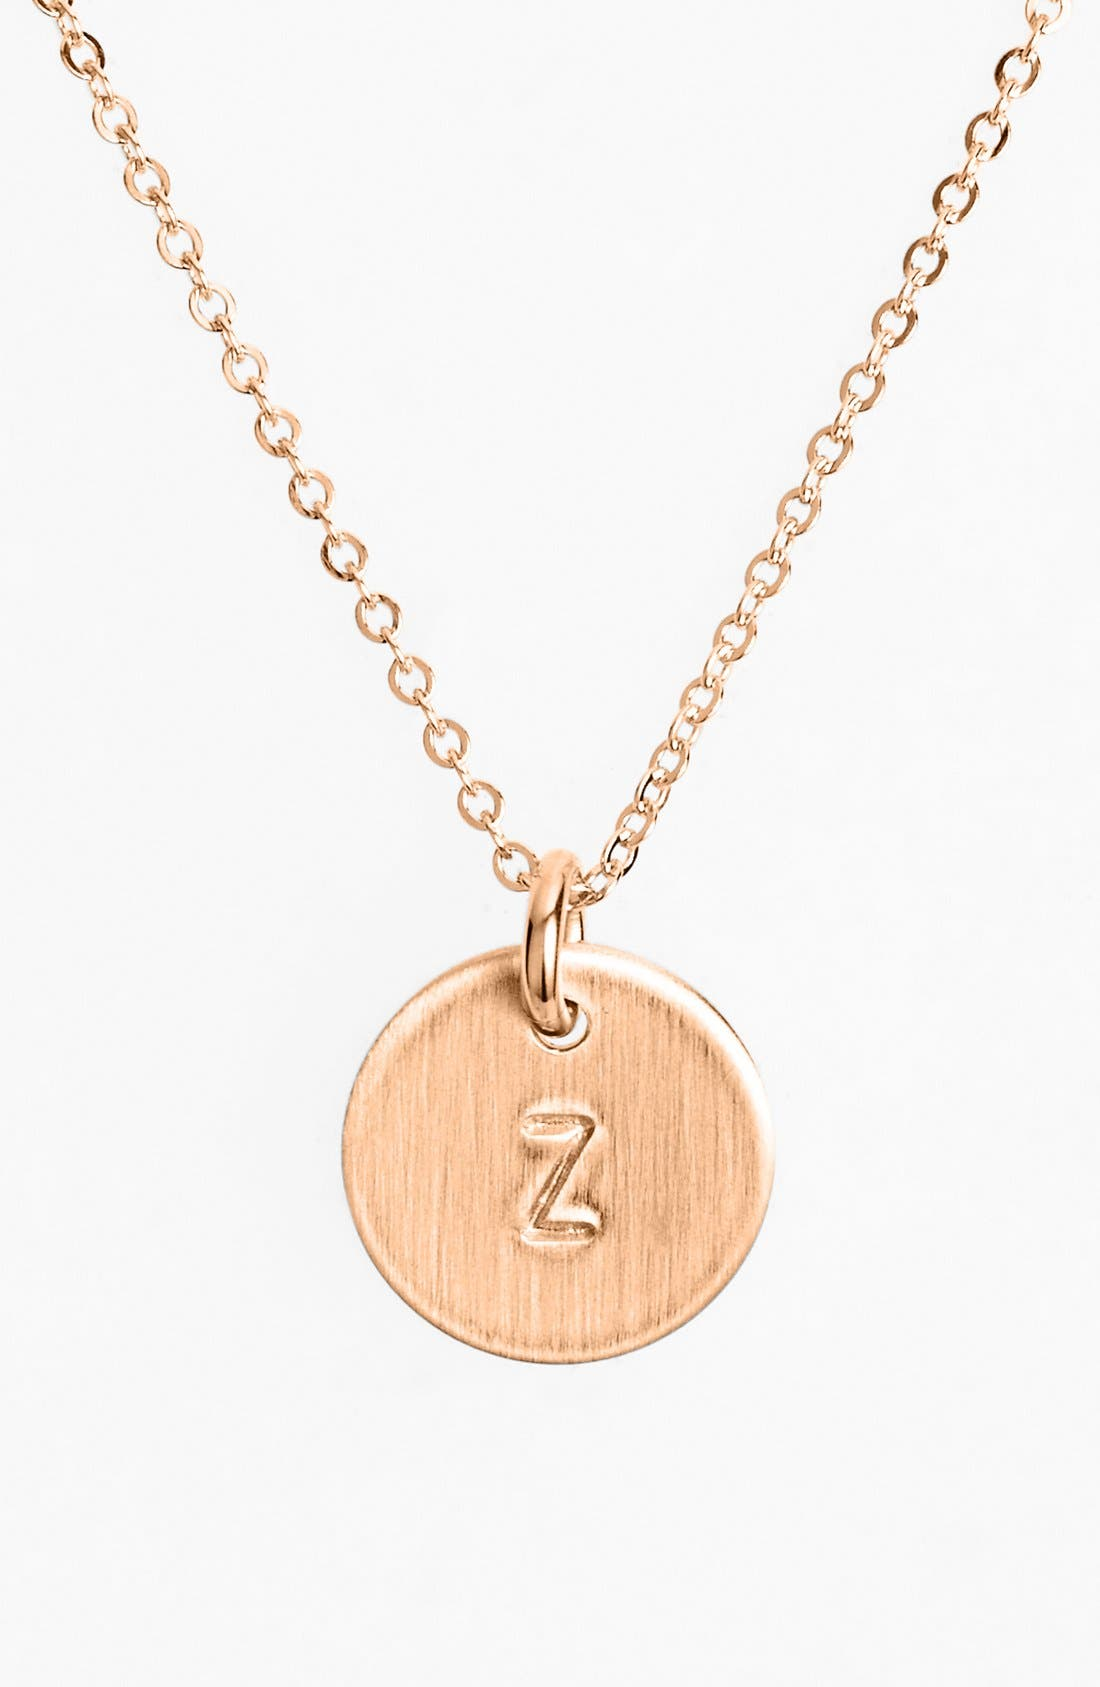 Alternate Image 1 Selected - Nashelle 14k-Rose Gold Fill Initial Mini Disc Necklace